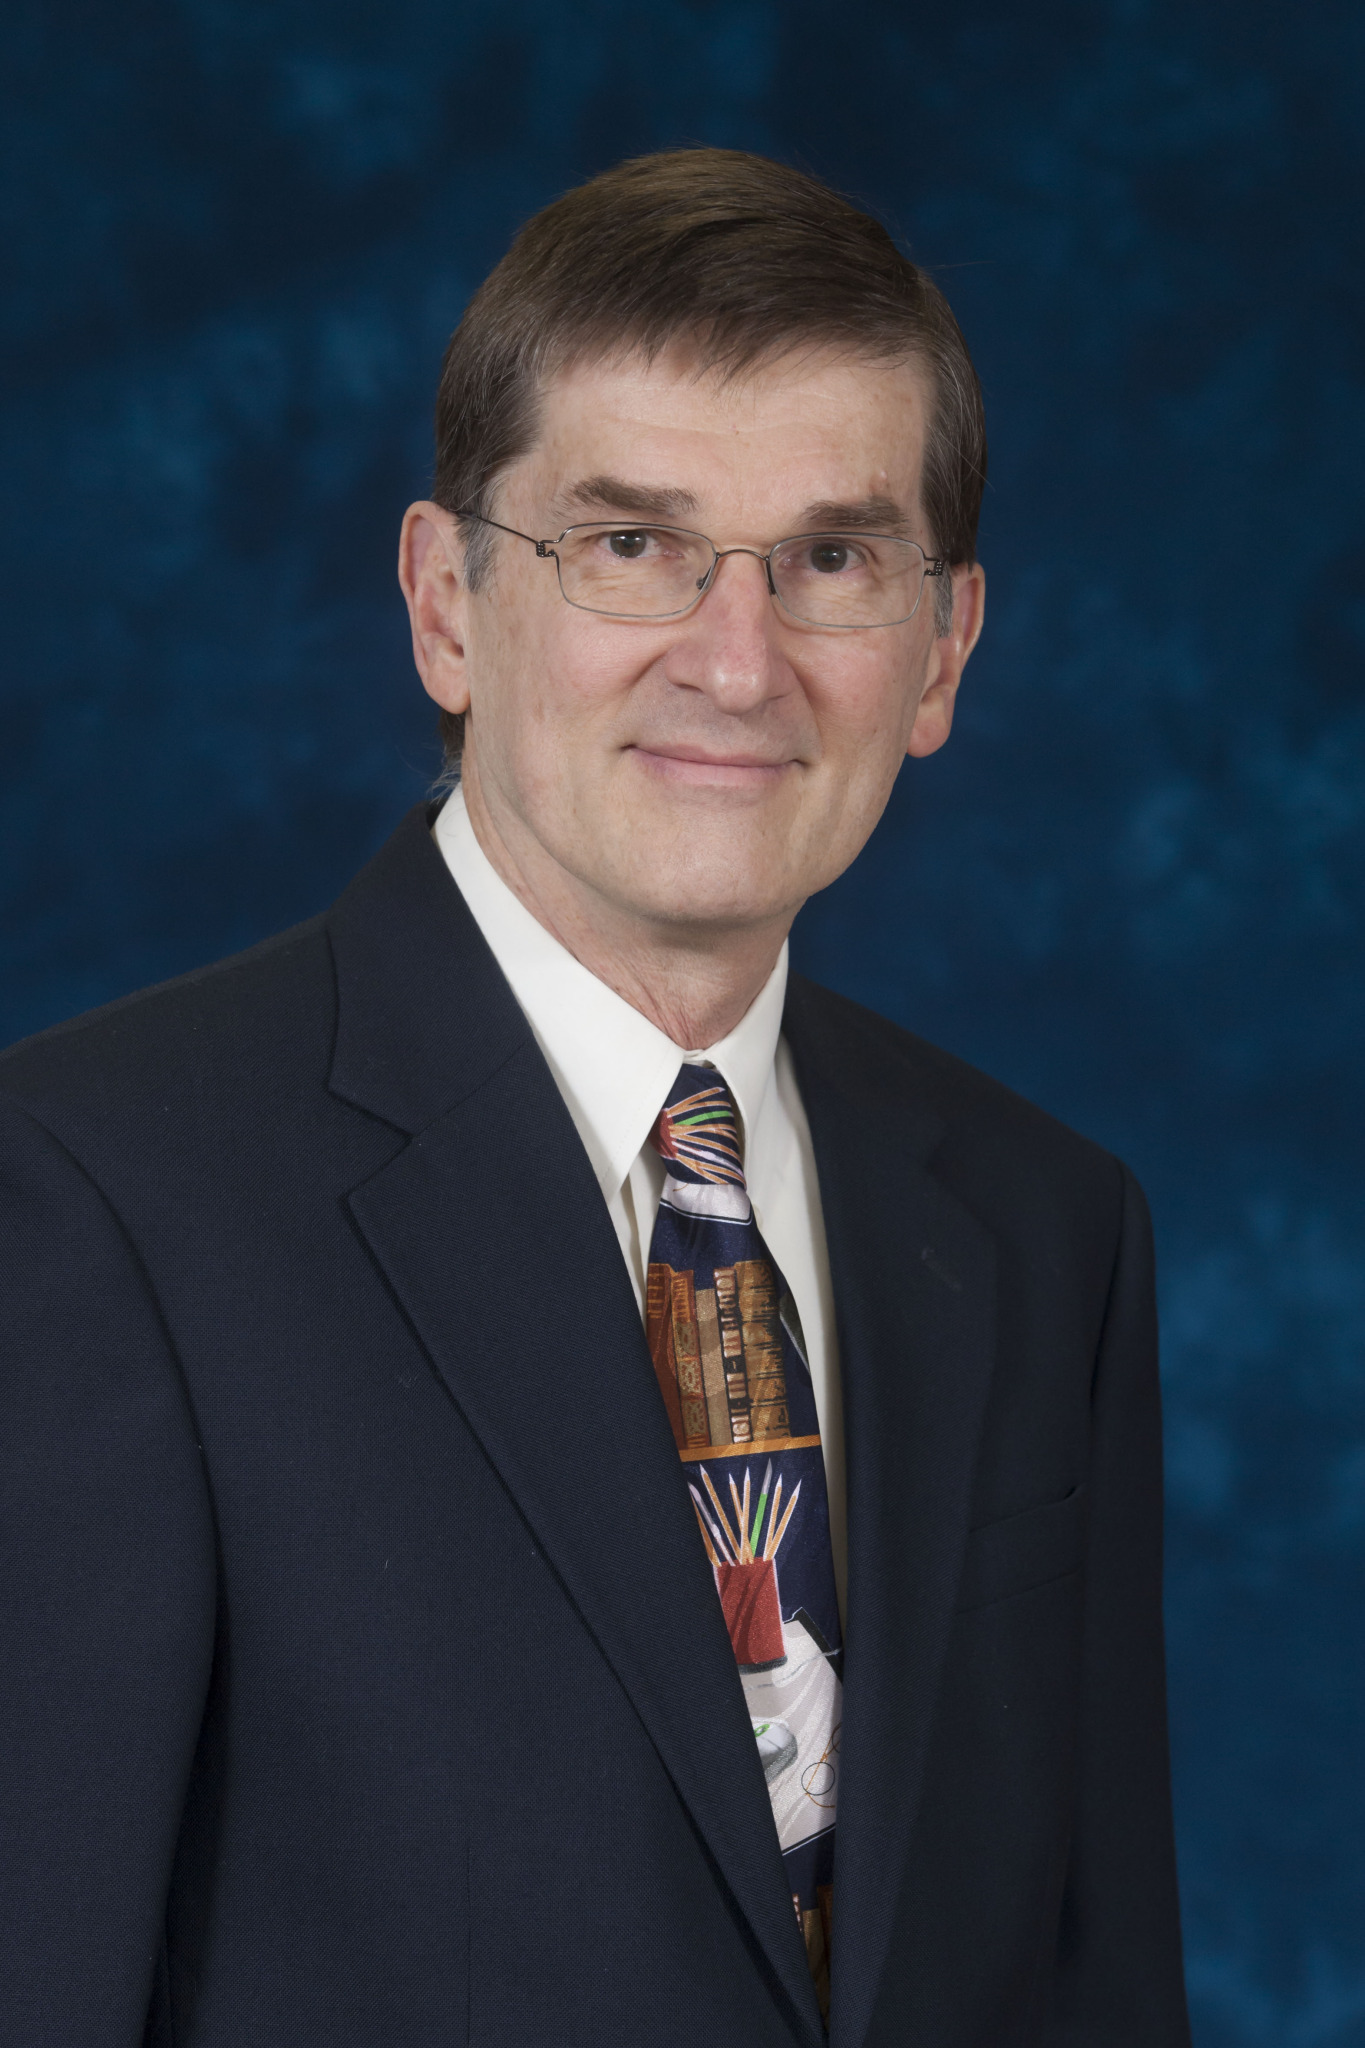 Dr. David A. Goss, Editor, Hindsight: Journal of Optometry History